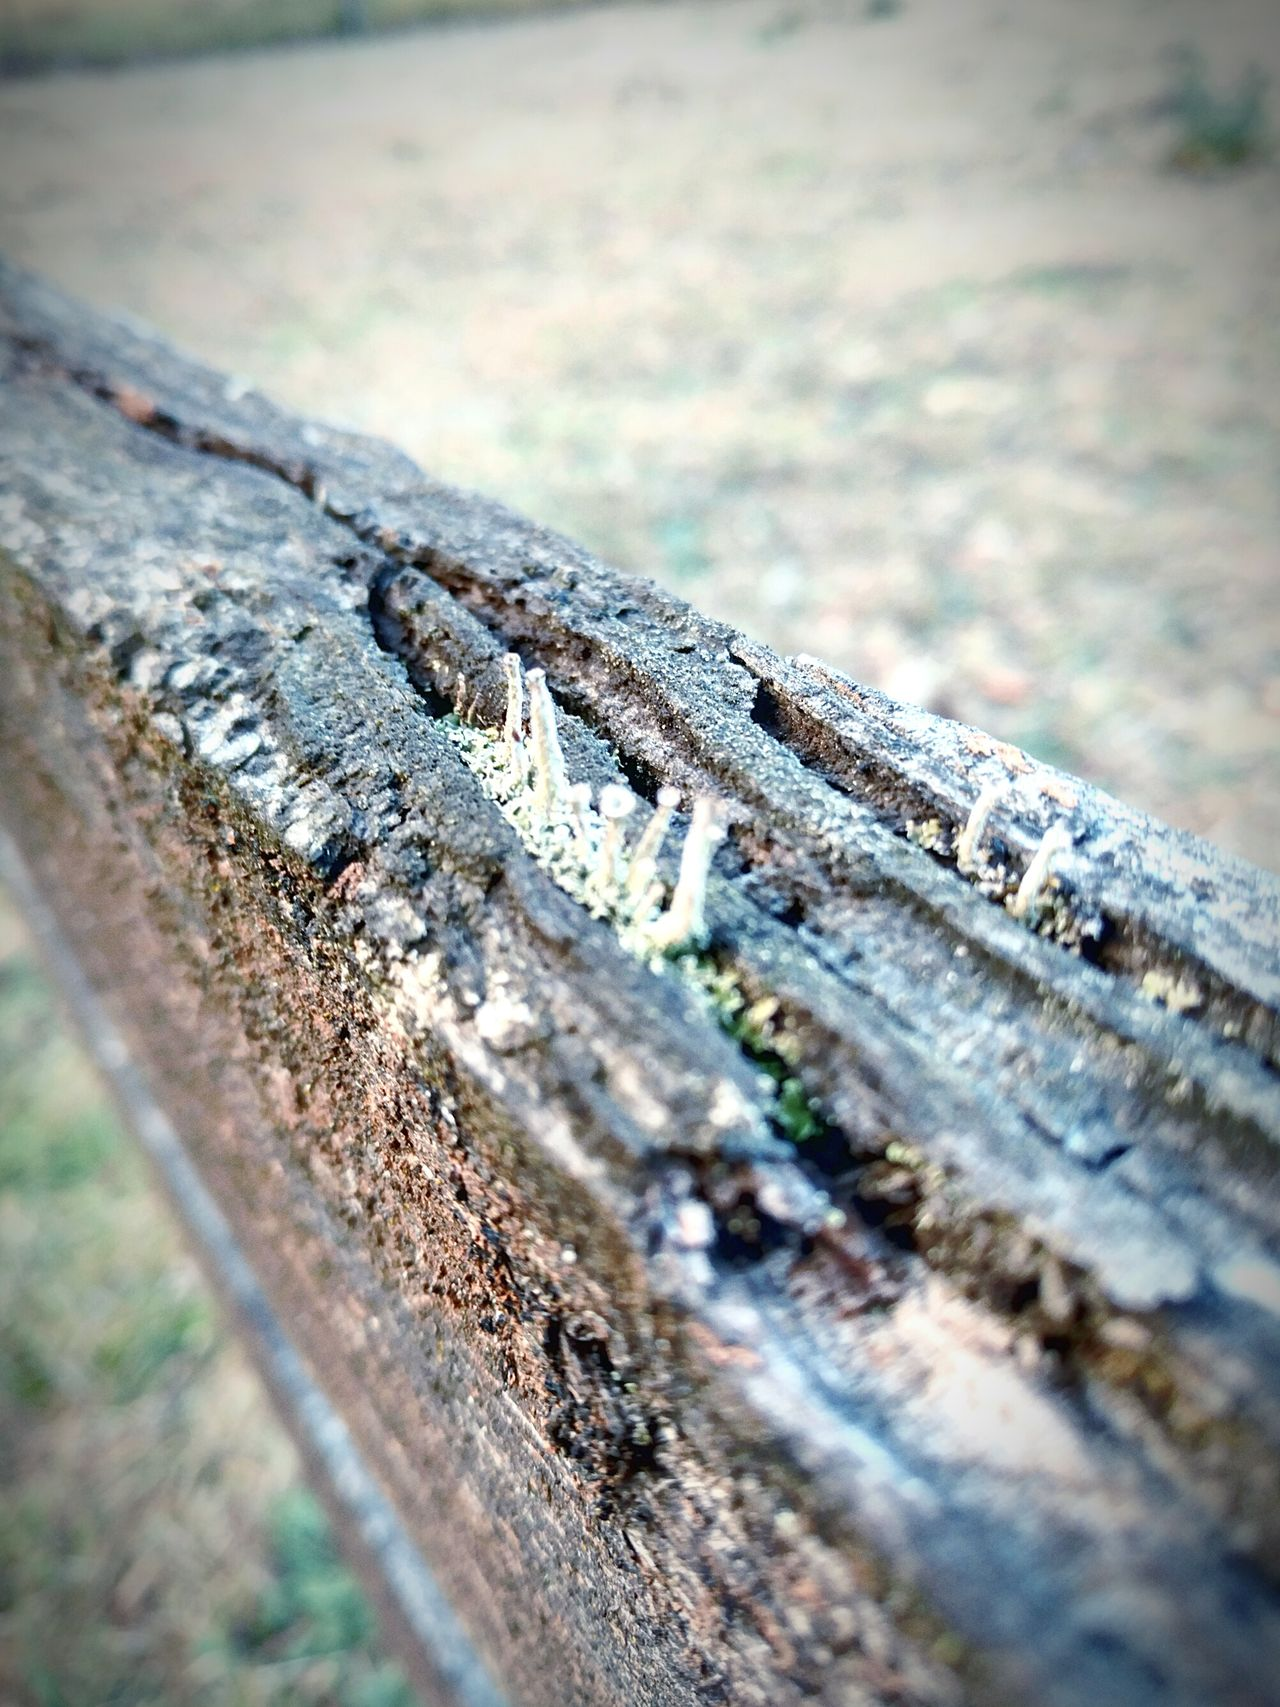 Life in The Rot Pasture pastured Fences & Beyond Lichen Decay Macro Wood Rotten Life In The Crack Board Fence Post Grass Growth